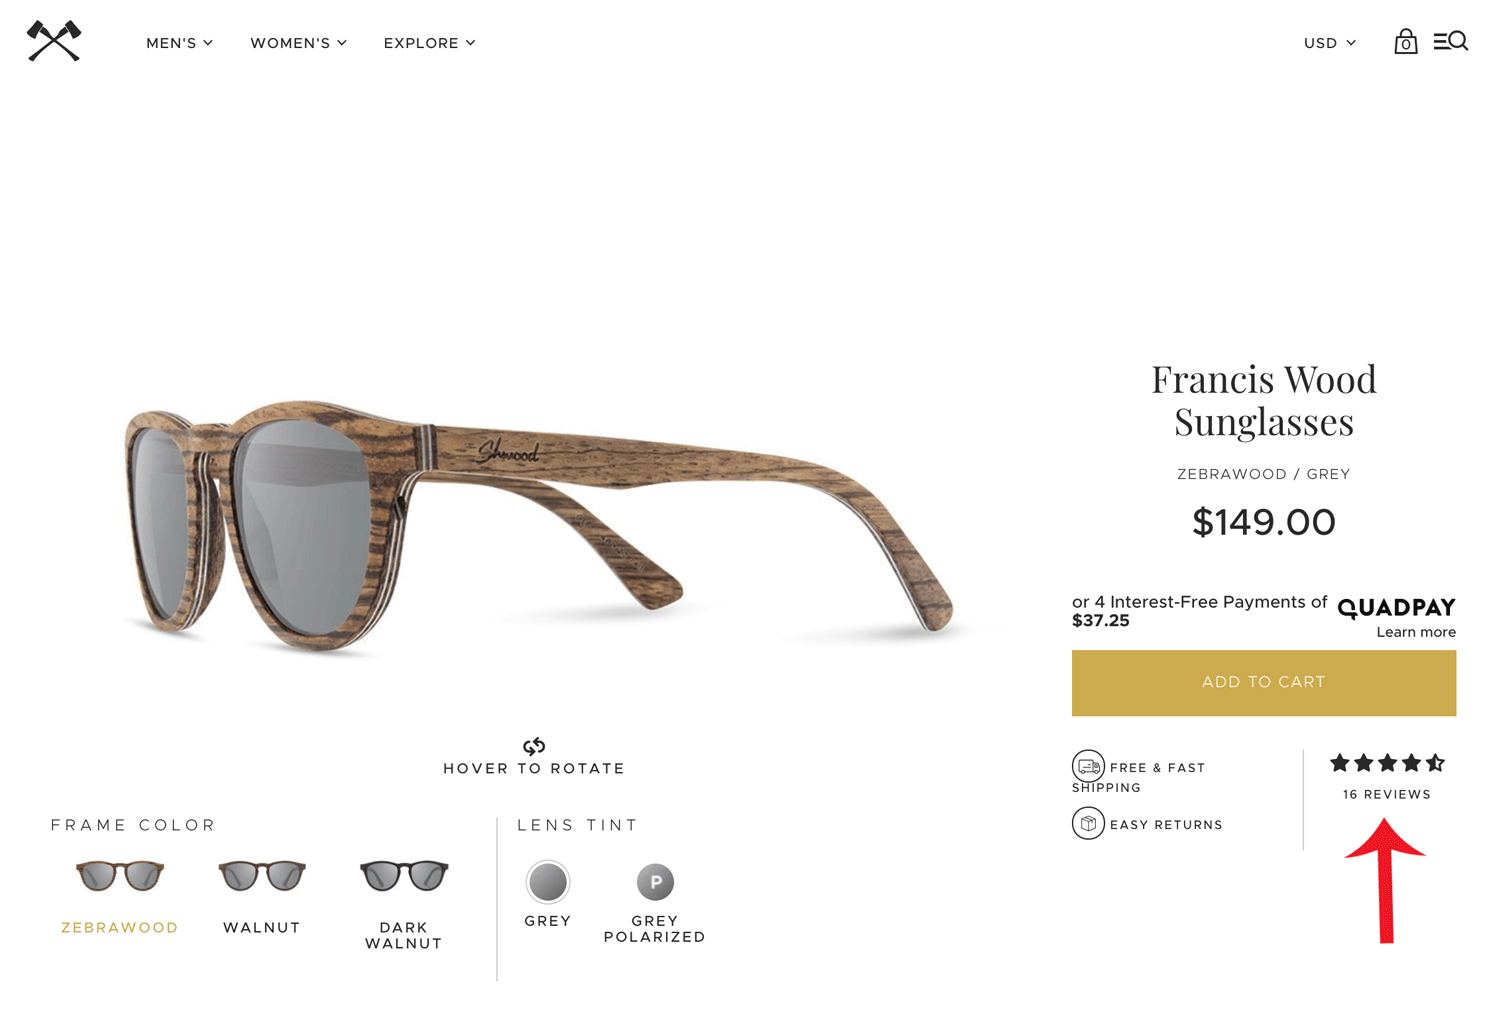 Screenshot showing a product page for sunglasses